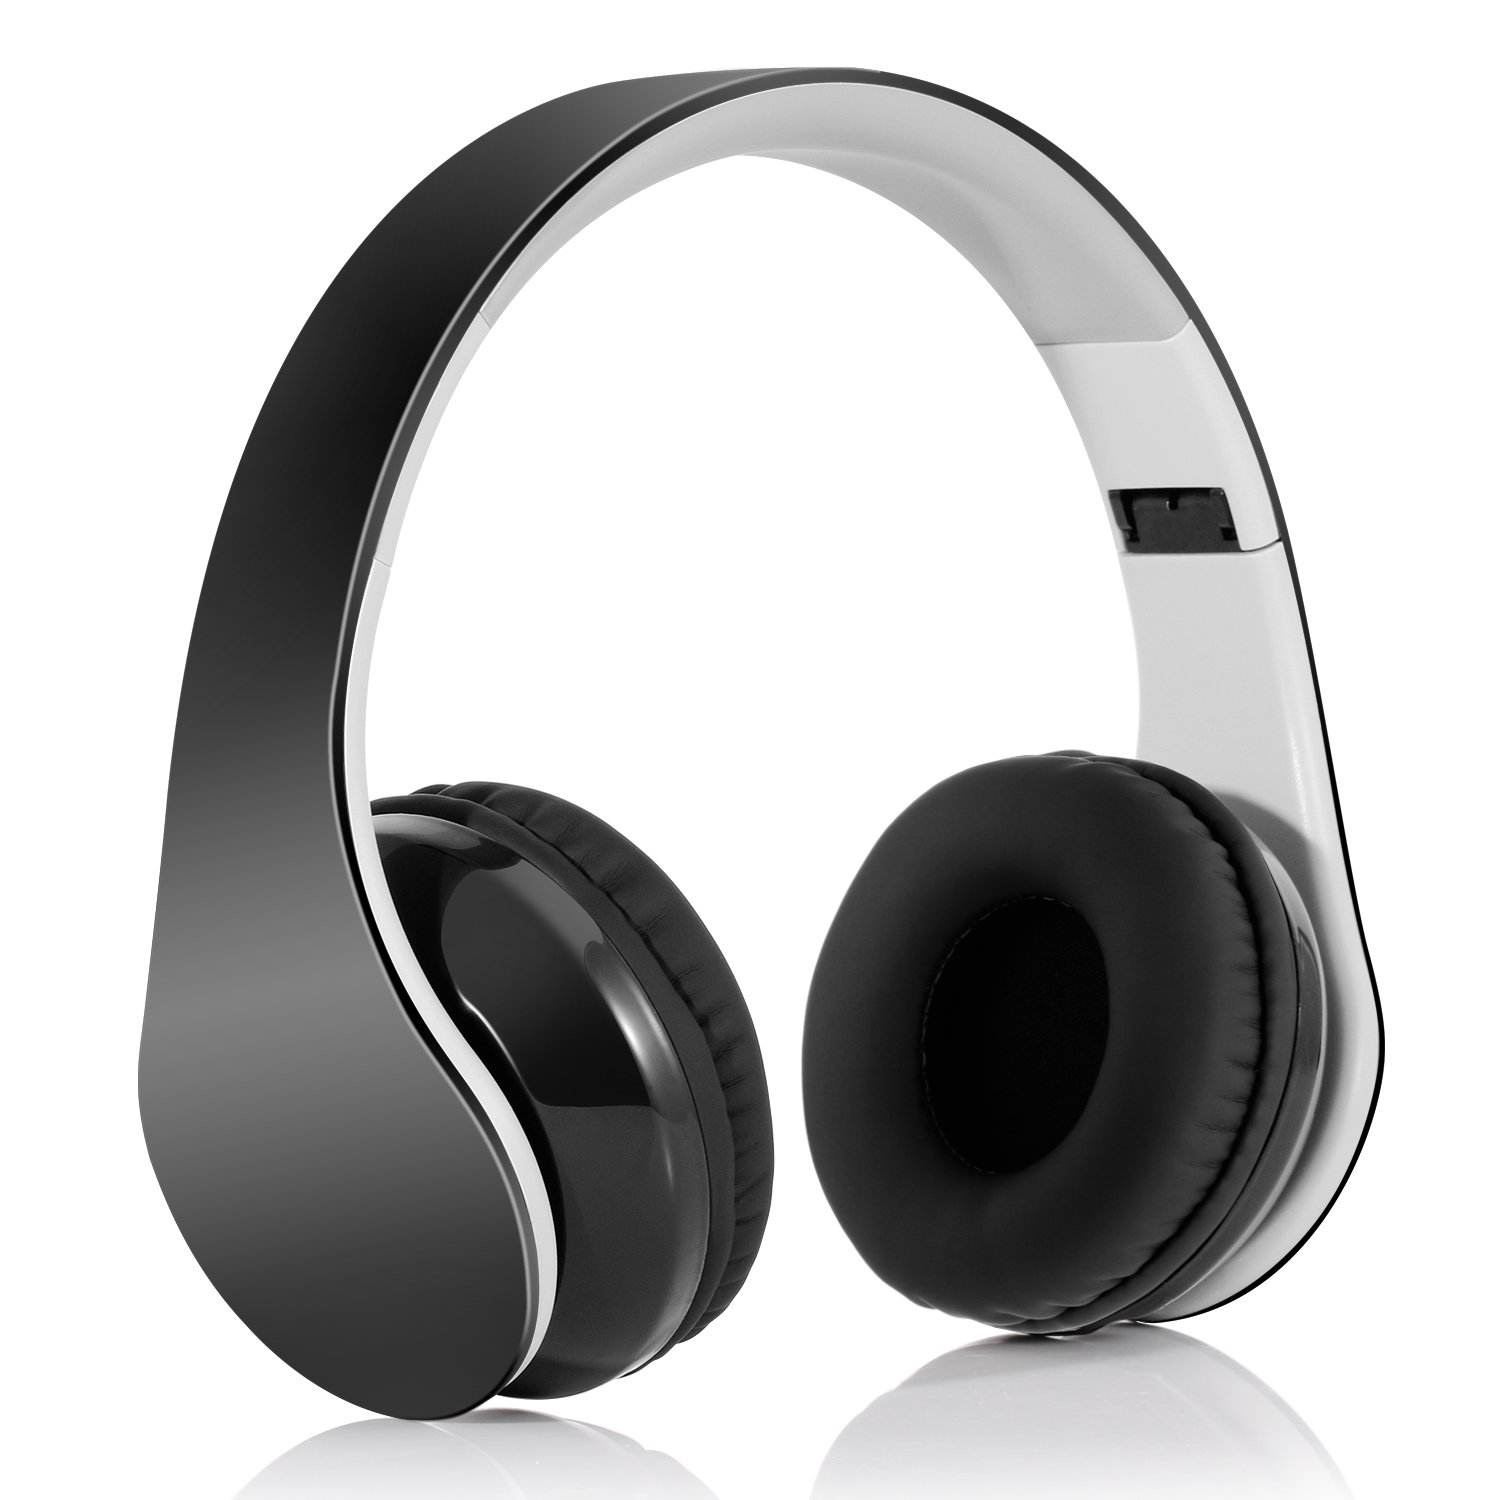 Details about Audifonos Inalambricos Para Iphone Samsung Tv Sony  Auriculares Bluetooth 15Hrs